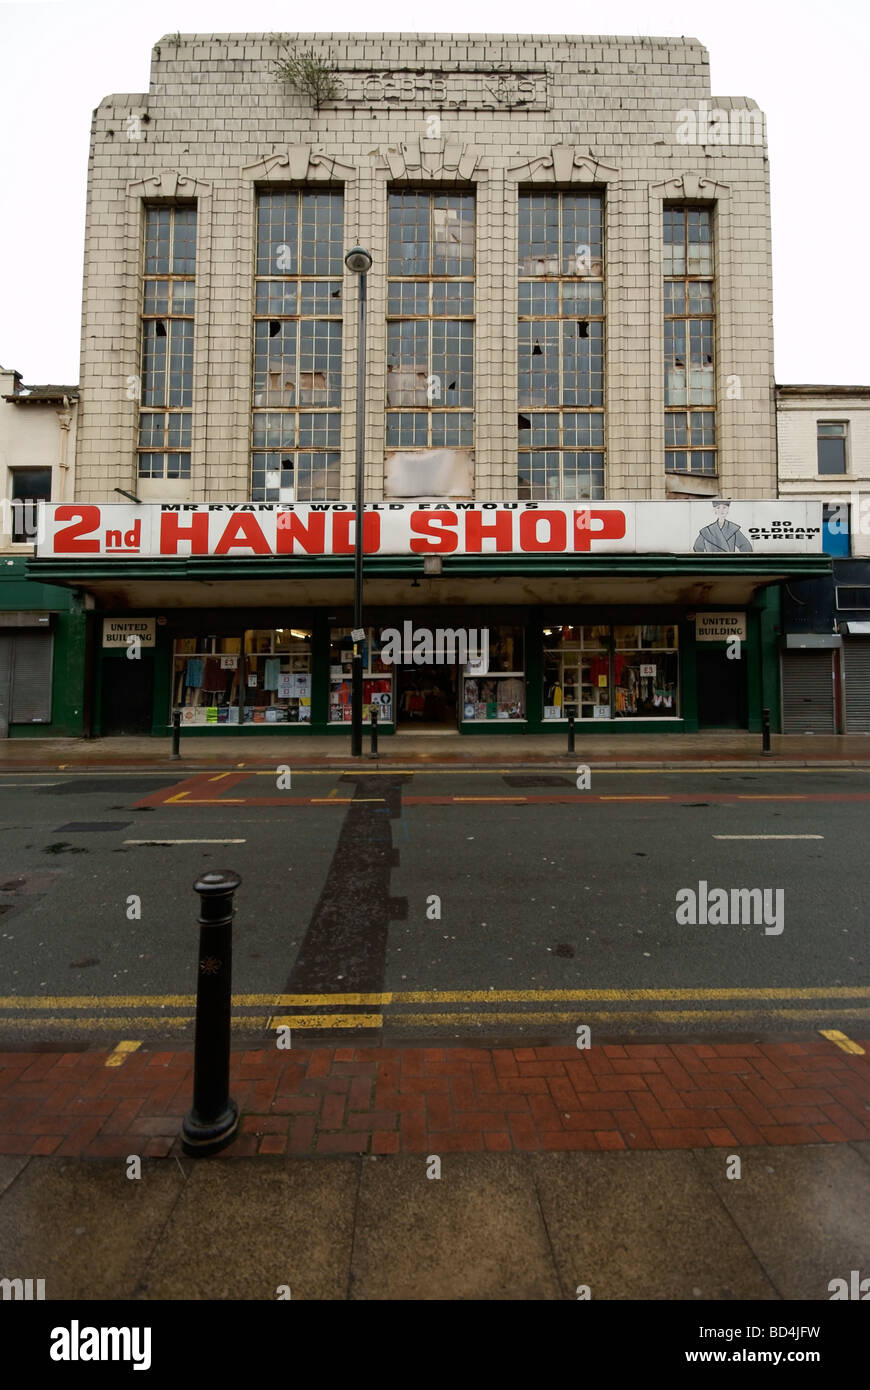 Mr Ryan's world famous 2nd hand shop - Stock Image